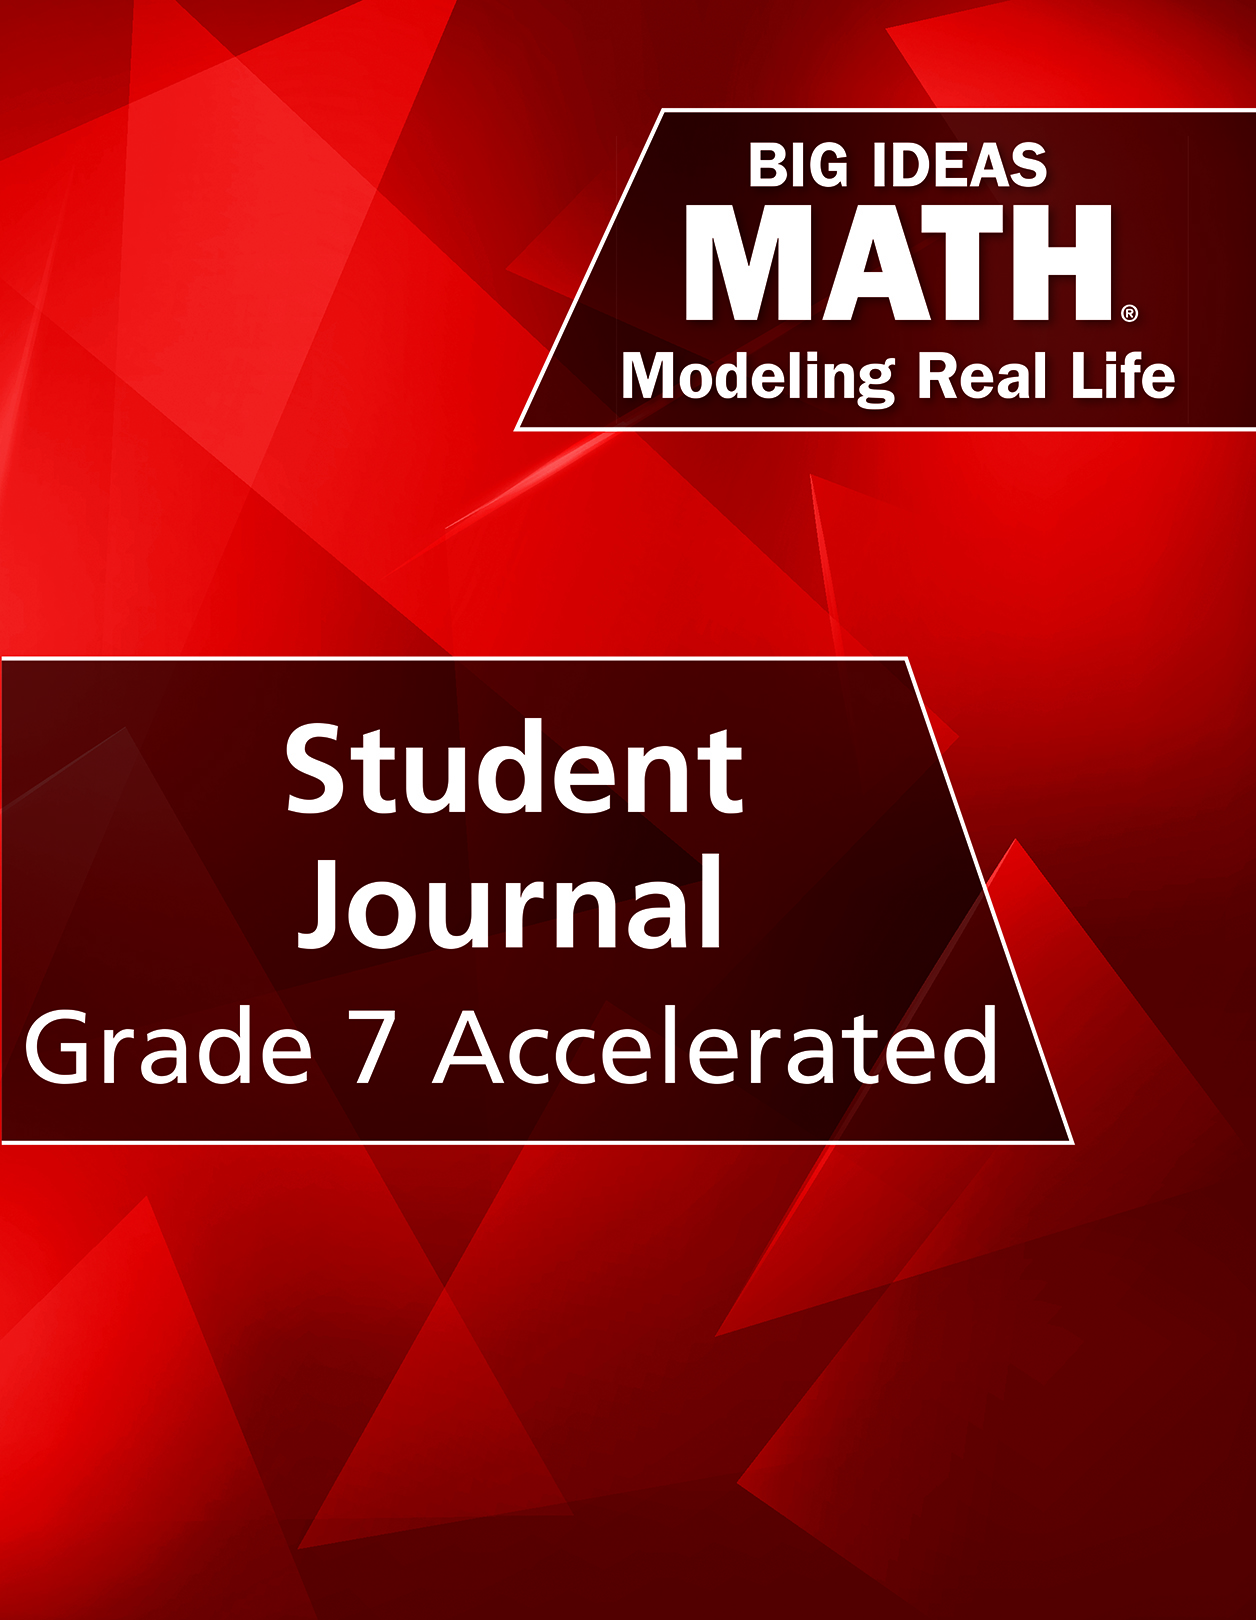 Big Ideas Math: Modeling Real Life Grade 7 Accelerated